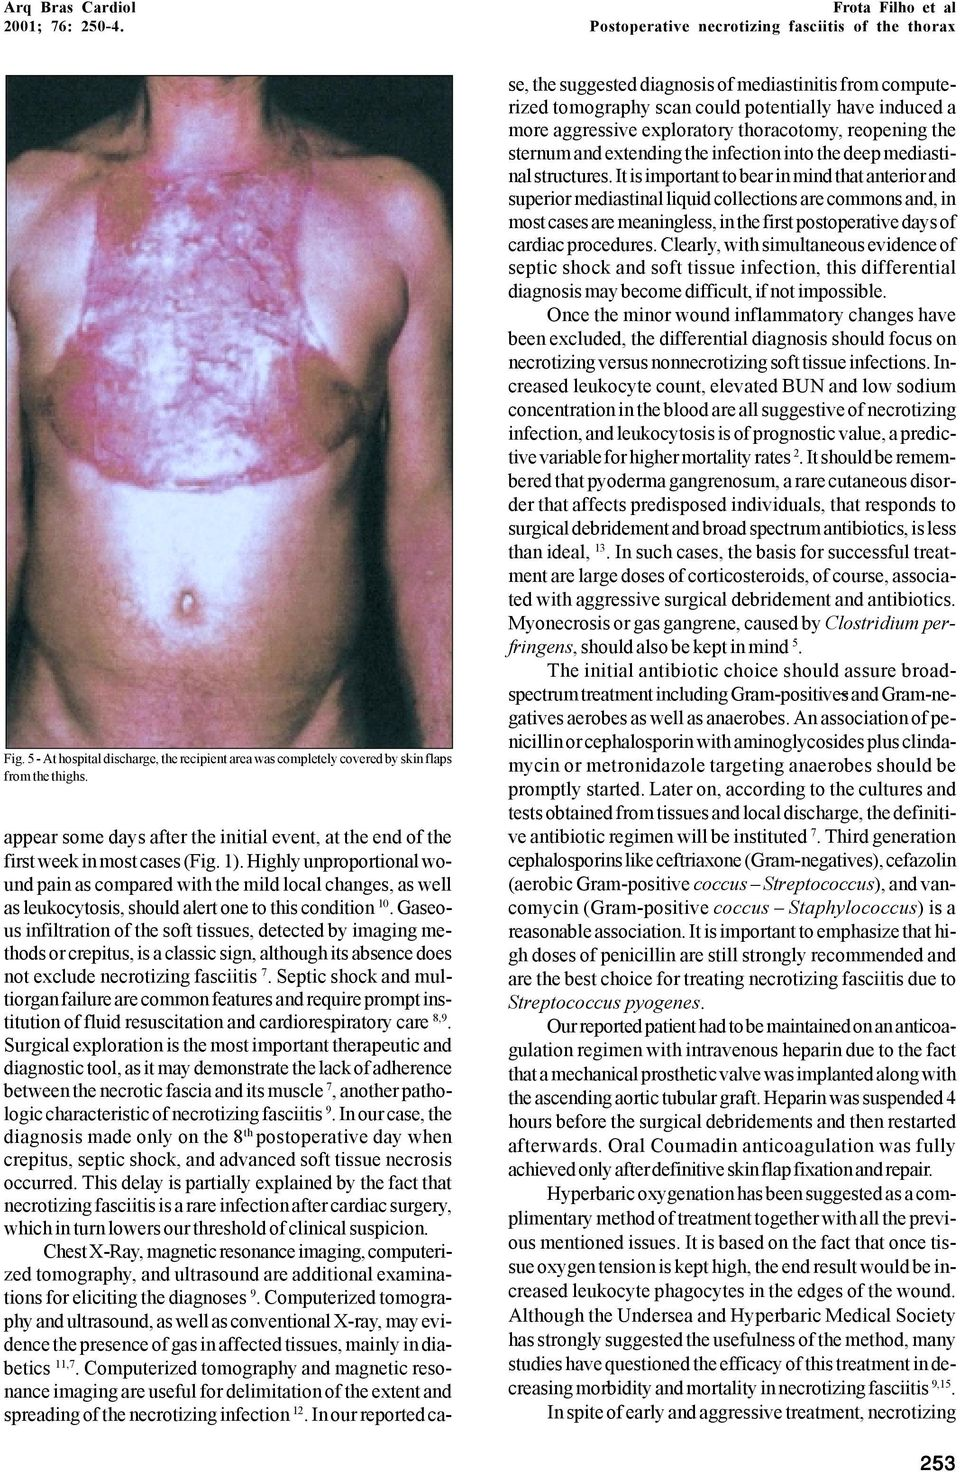 Highly unproportional wound pain as compared with the mild local changes, as well as leukocytosis, should alert one to this condition 10.